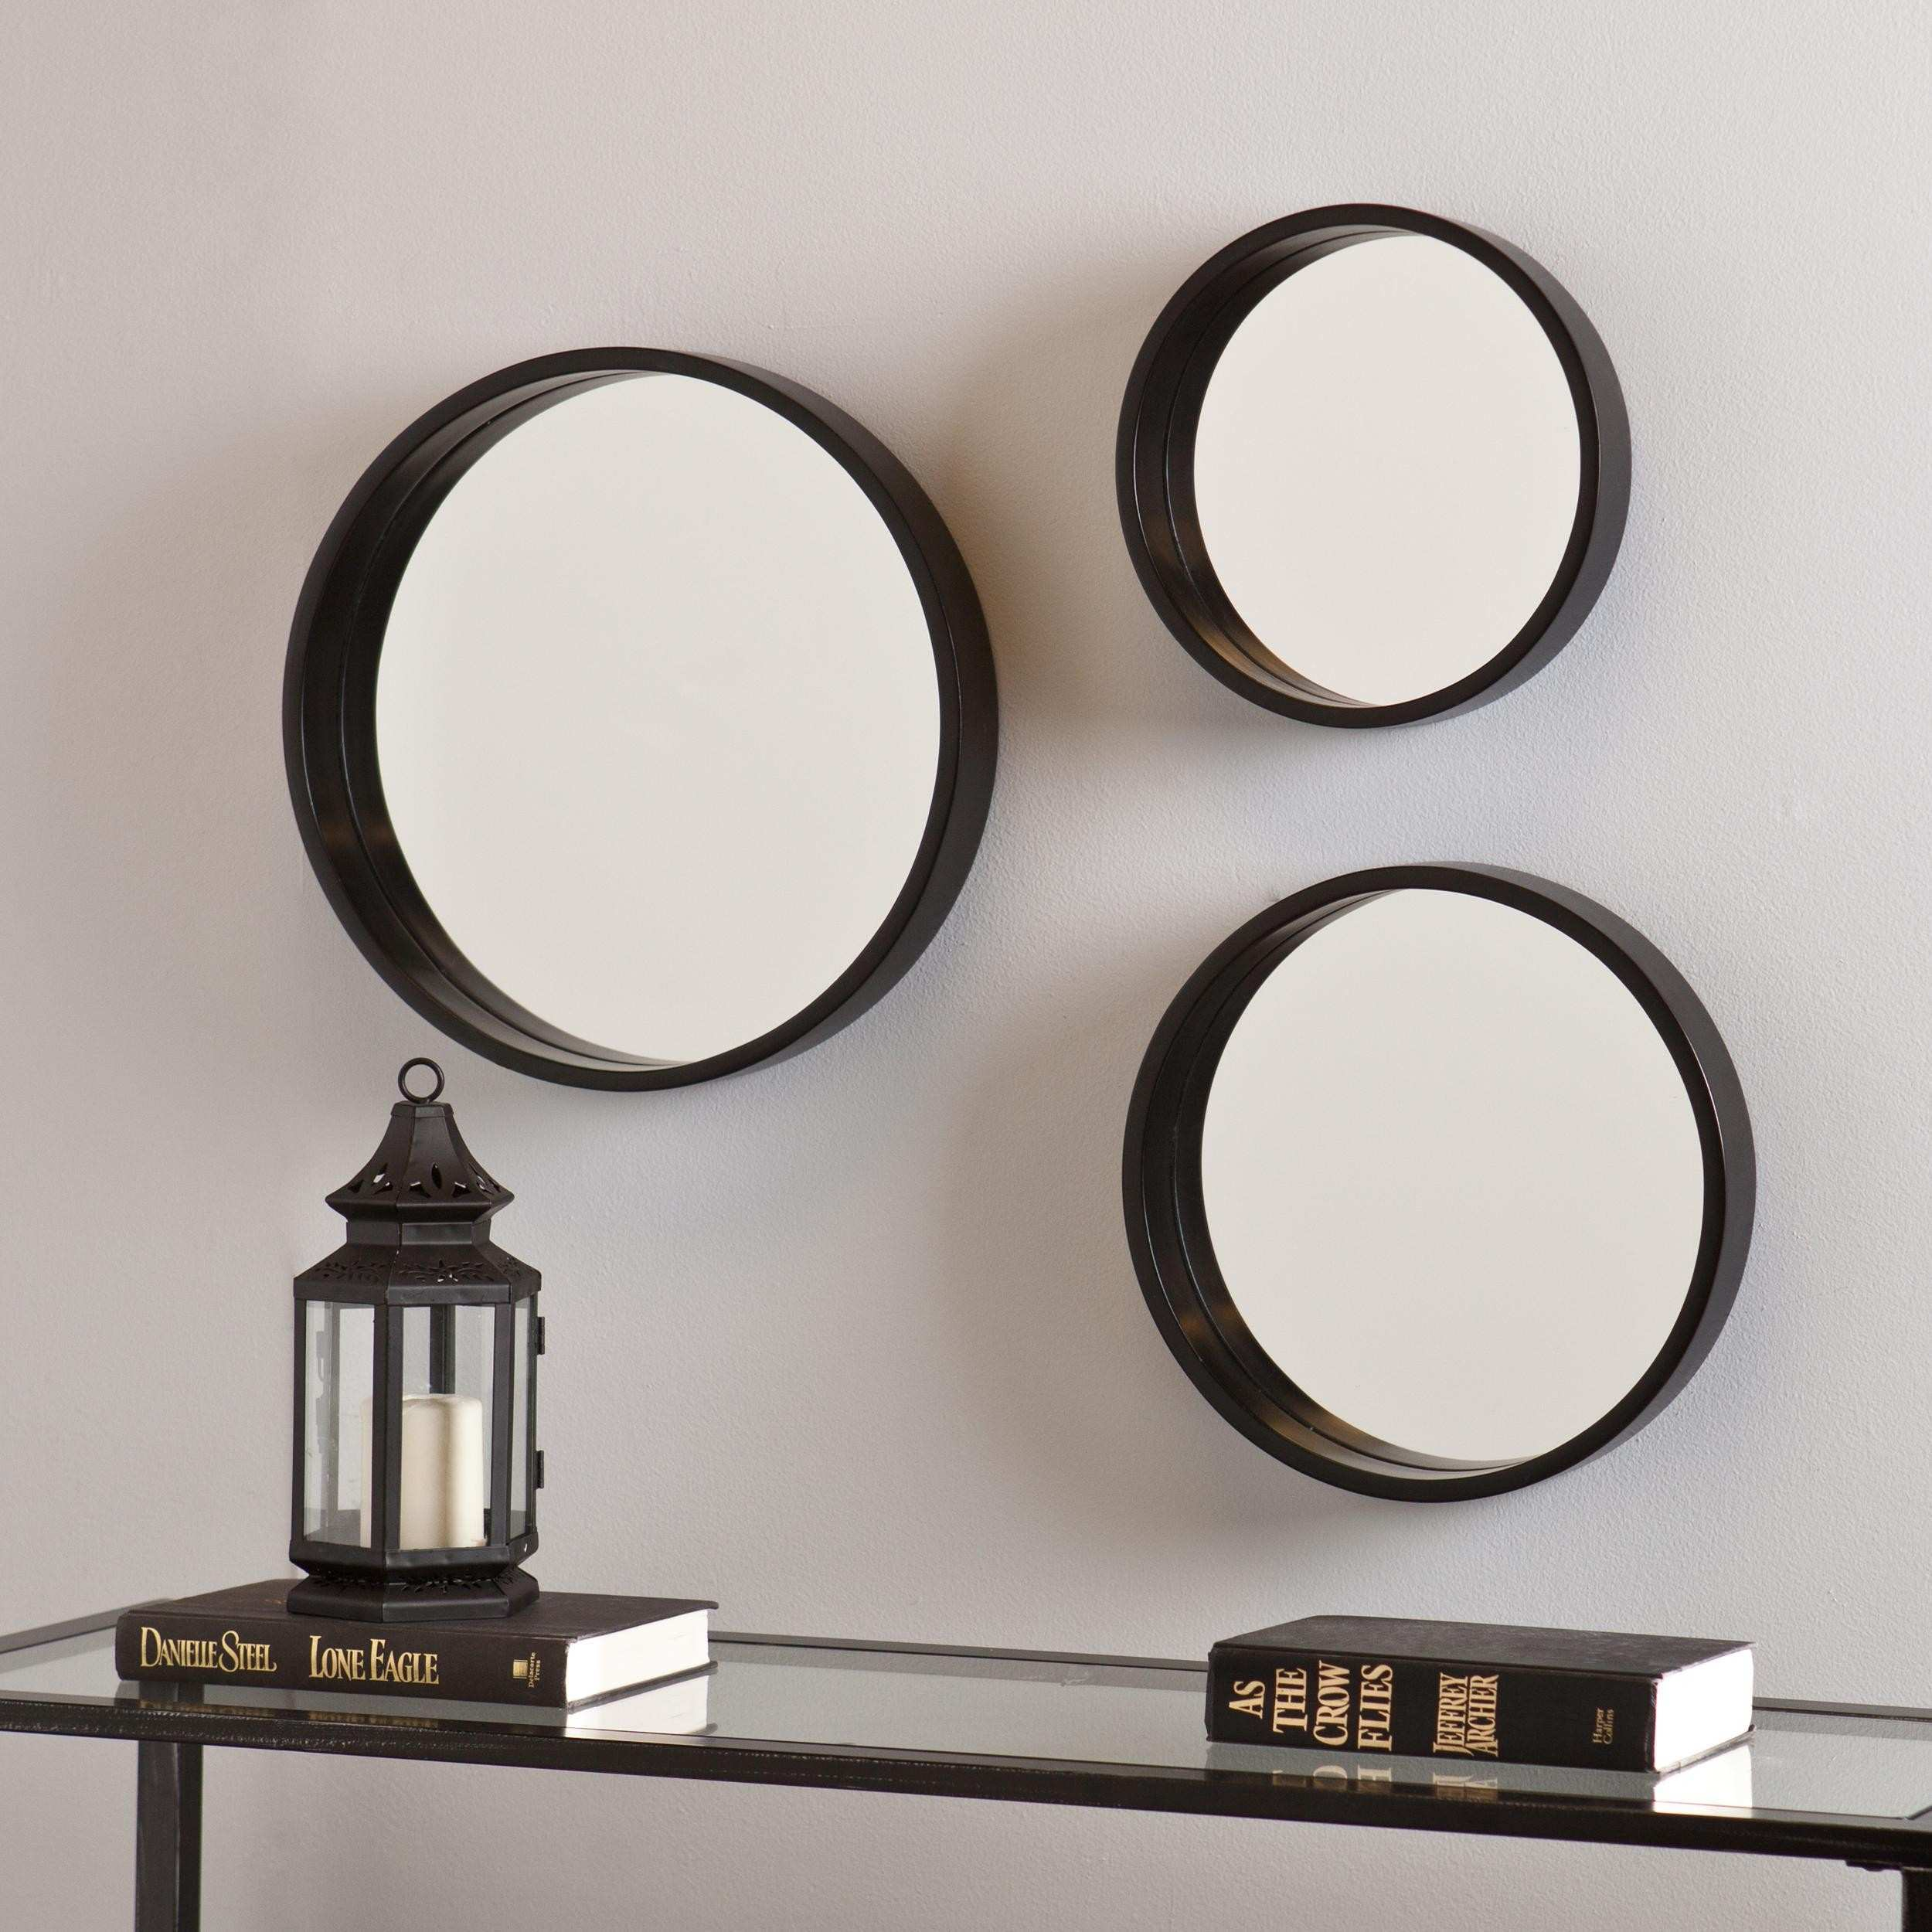 Artistic Idea to Decorate Home with 3 Piece Wall Mirror Set